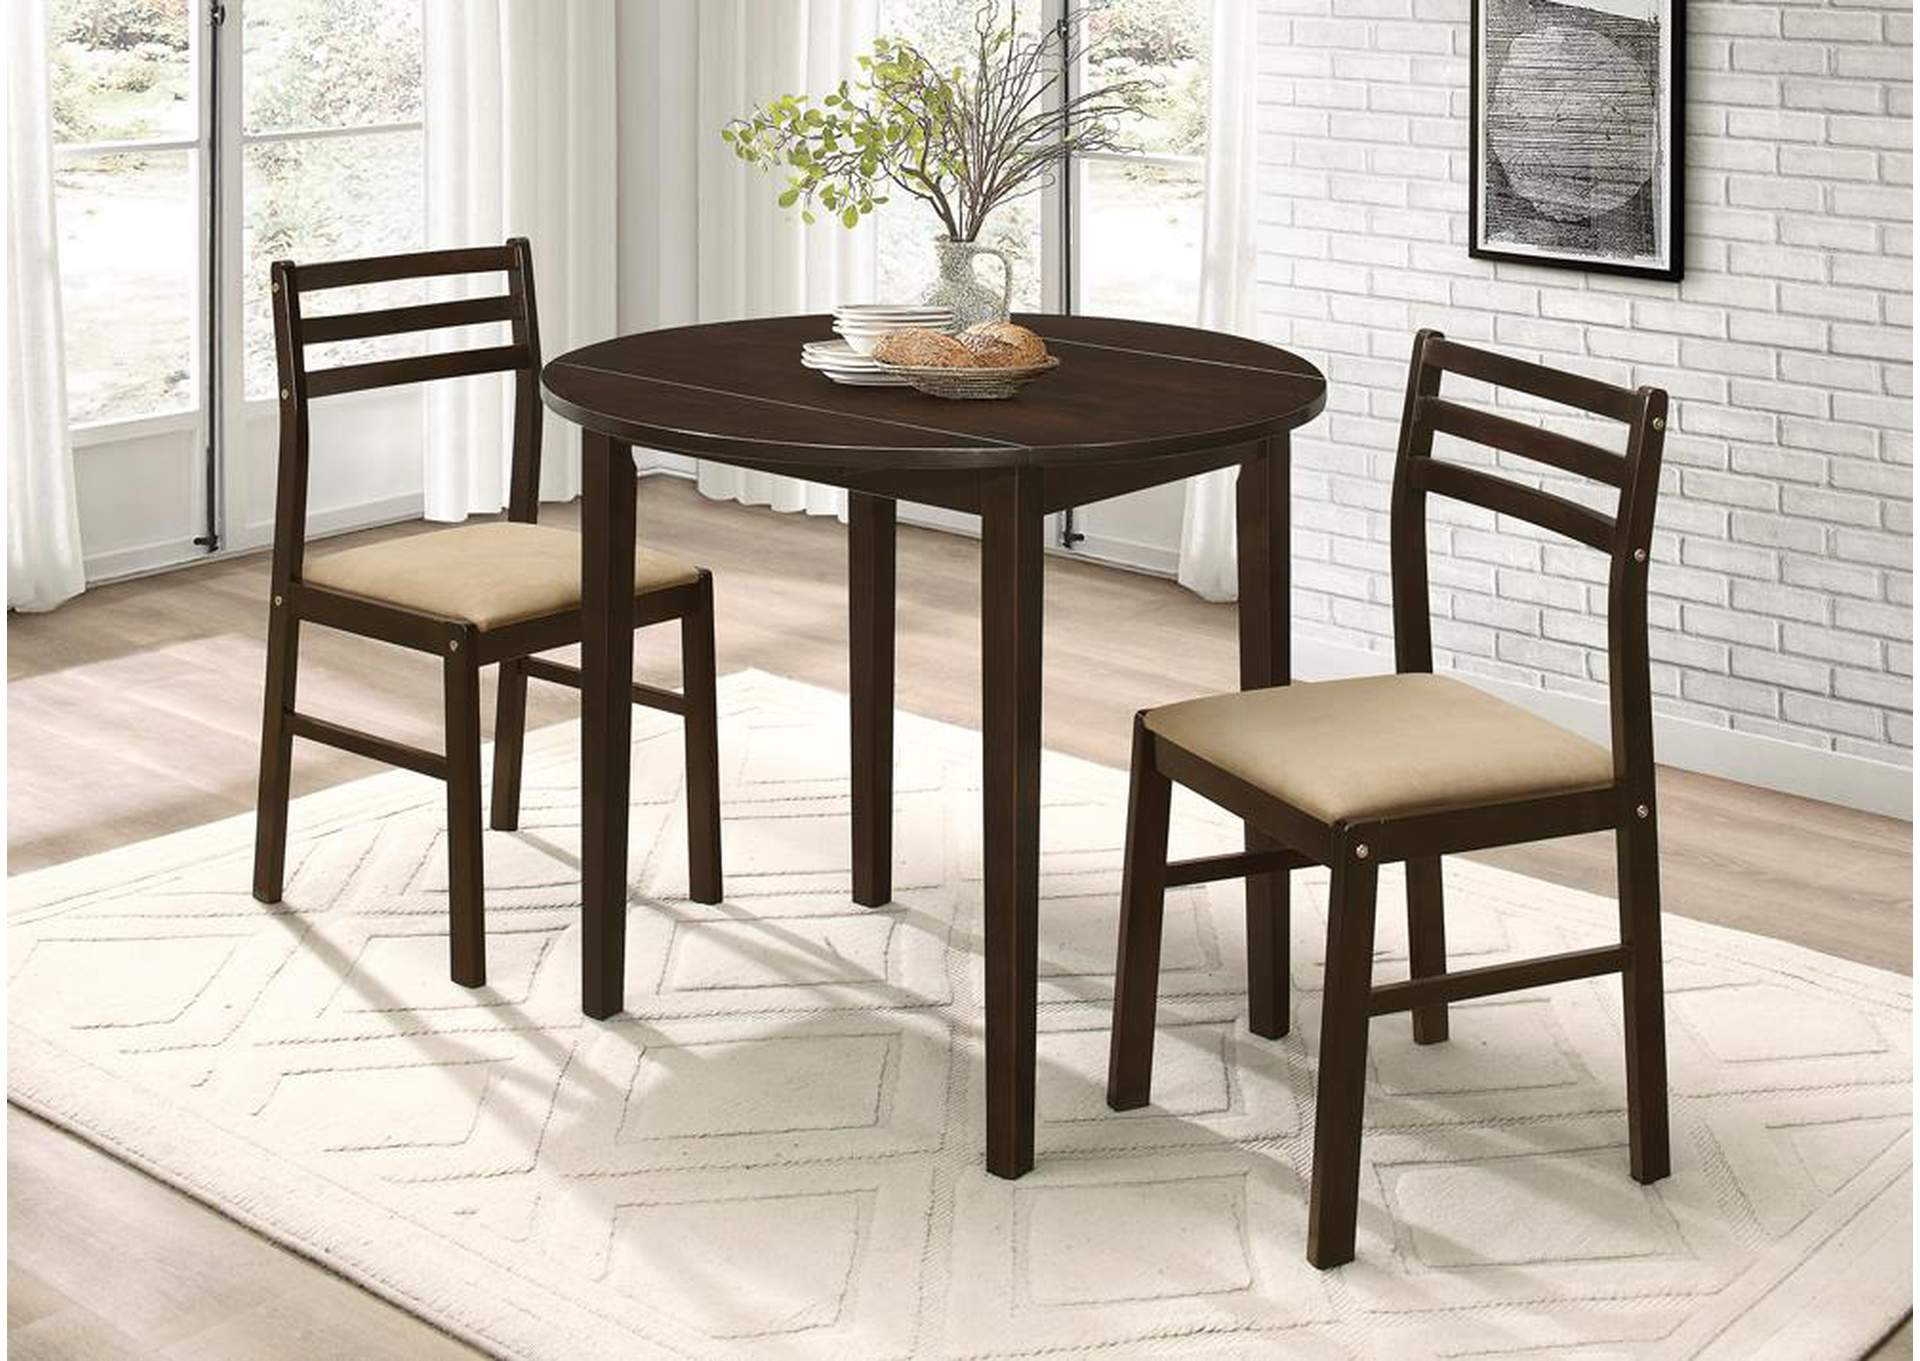 Furniture outlet chicago llc chicago il white for Coaster furniture